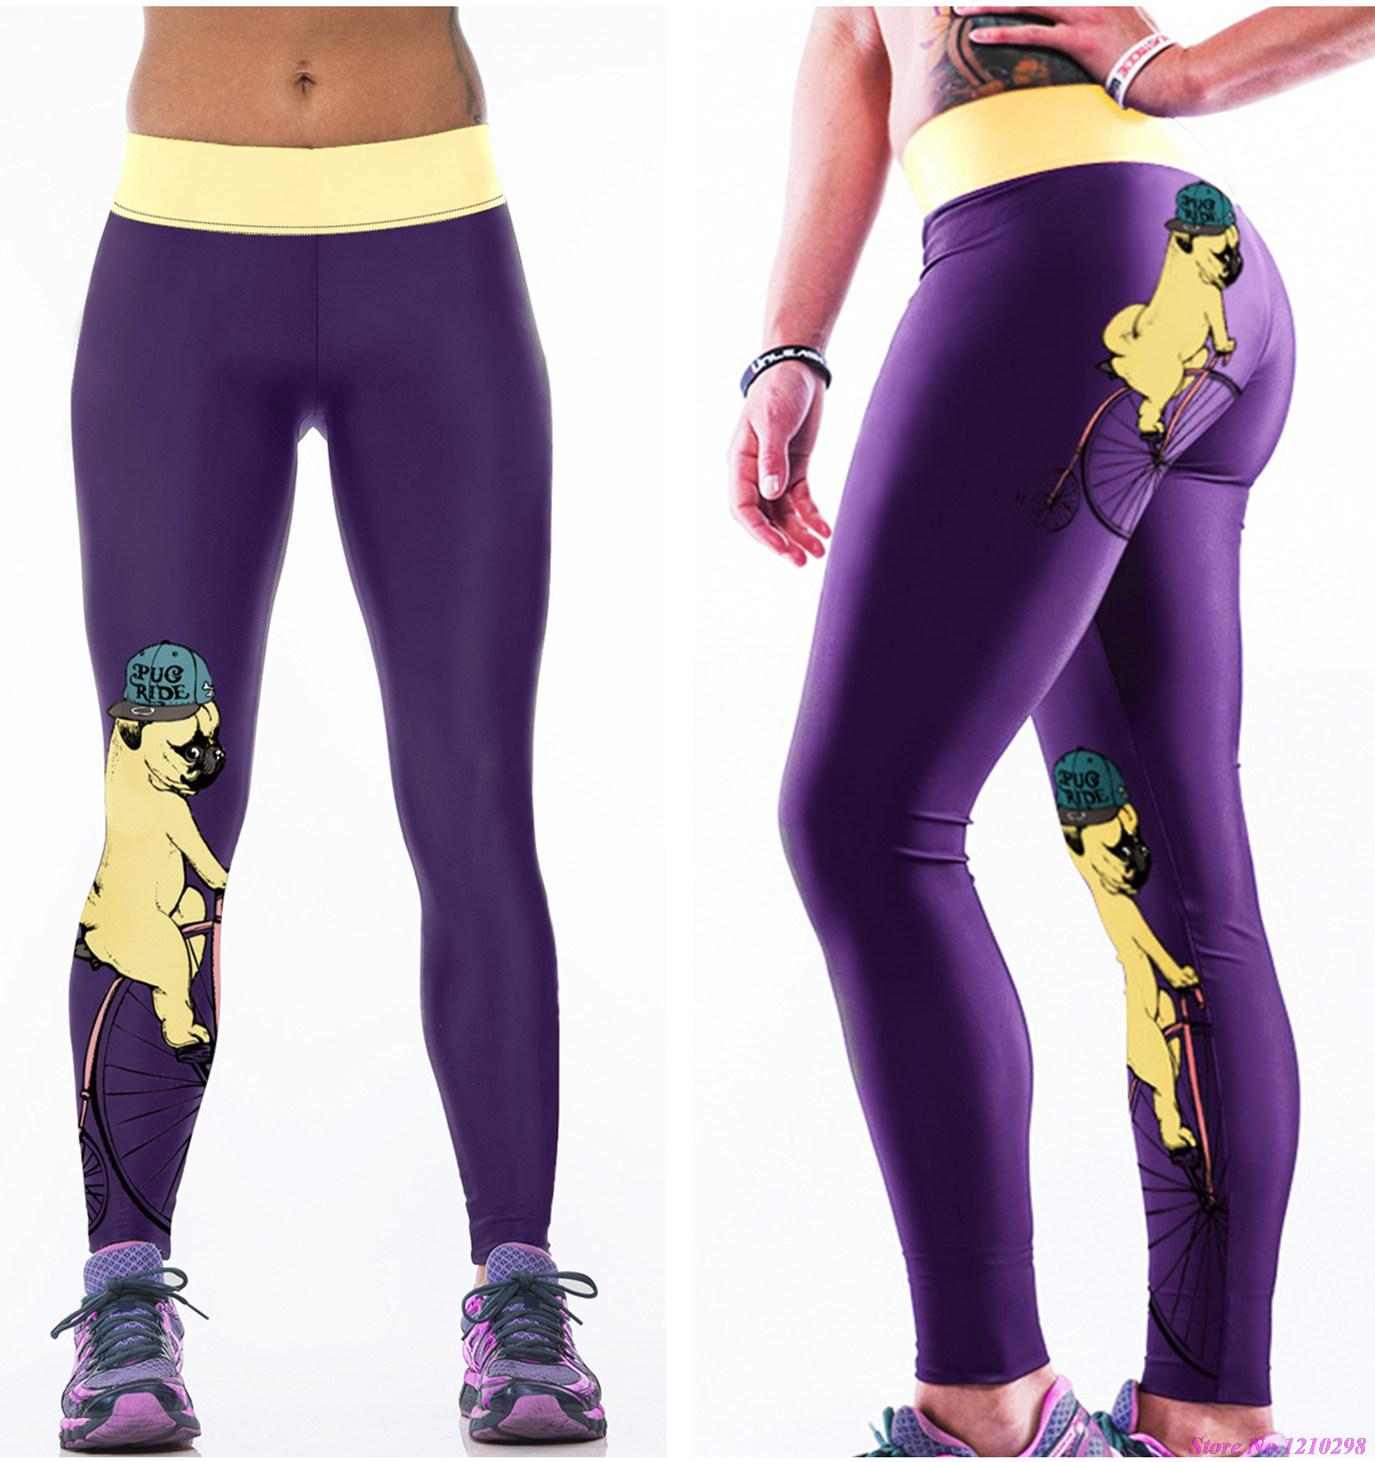 68462b1058e77 Purple Cute Puppy Yoga Pants Leggings Women Fitness Jogging Pants Trousers  Yellow Dog With Hat Print Quick Drying Wholesale-in Yoga Pants from Sports  ...